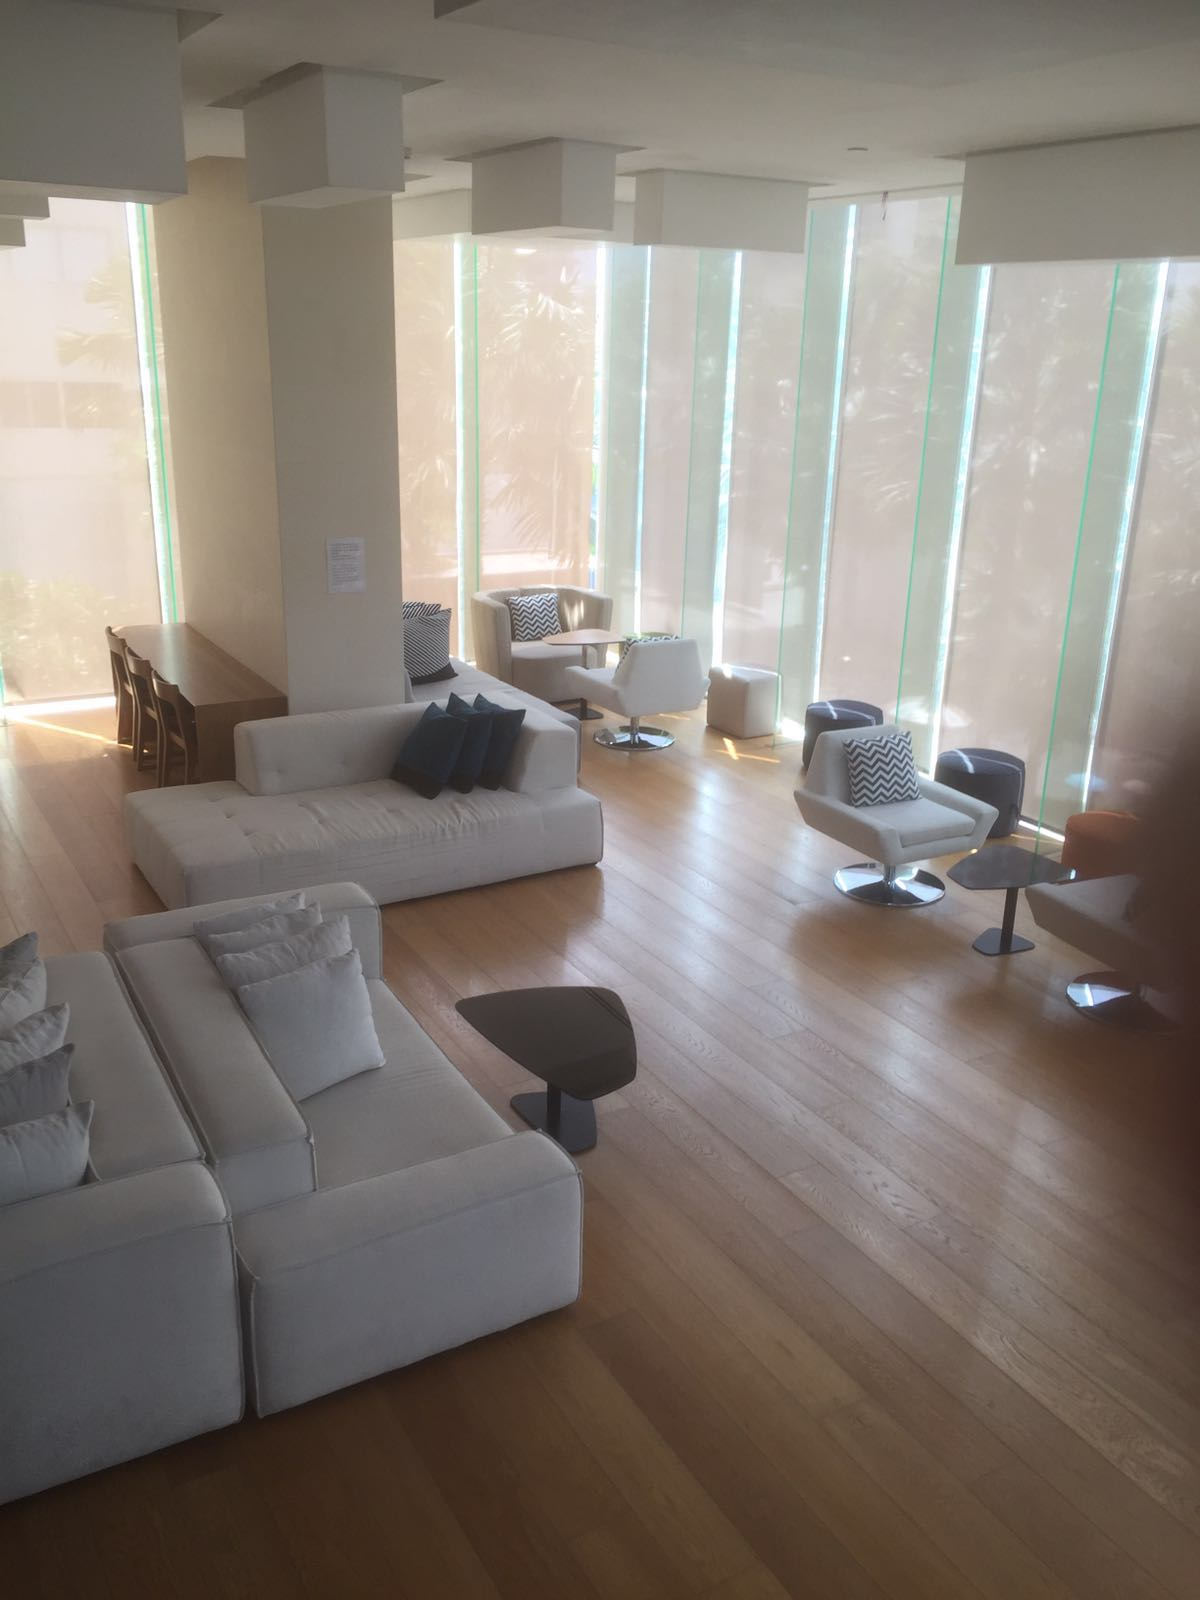 RE/MAX All Star Realty Agency's The Room Sukhumvit 21 large one bedder (53sqm) for sale/rent cheap 6